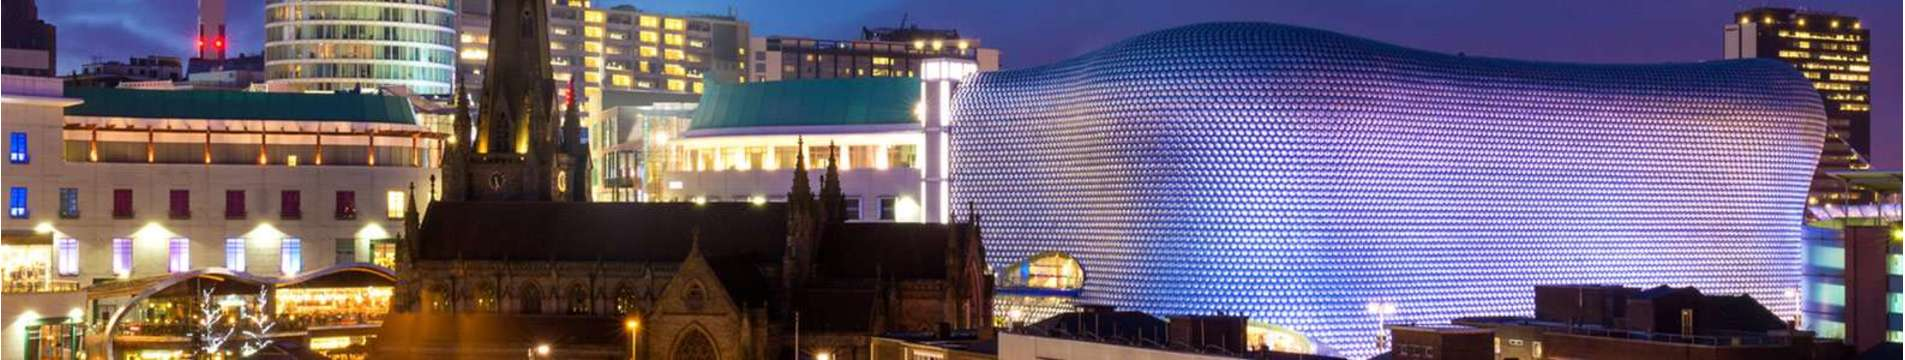 5-awesome-places-to-go-in-birmingham-by-night-thumb.jpg